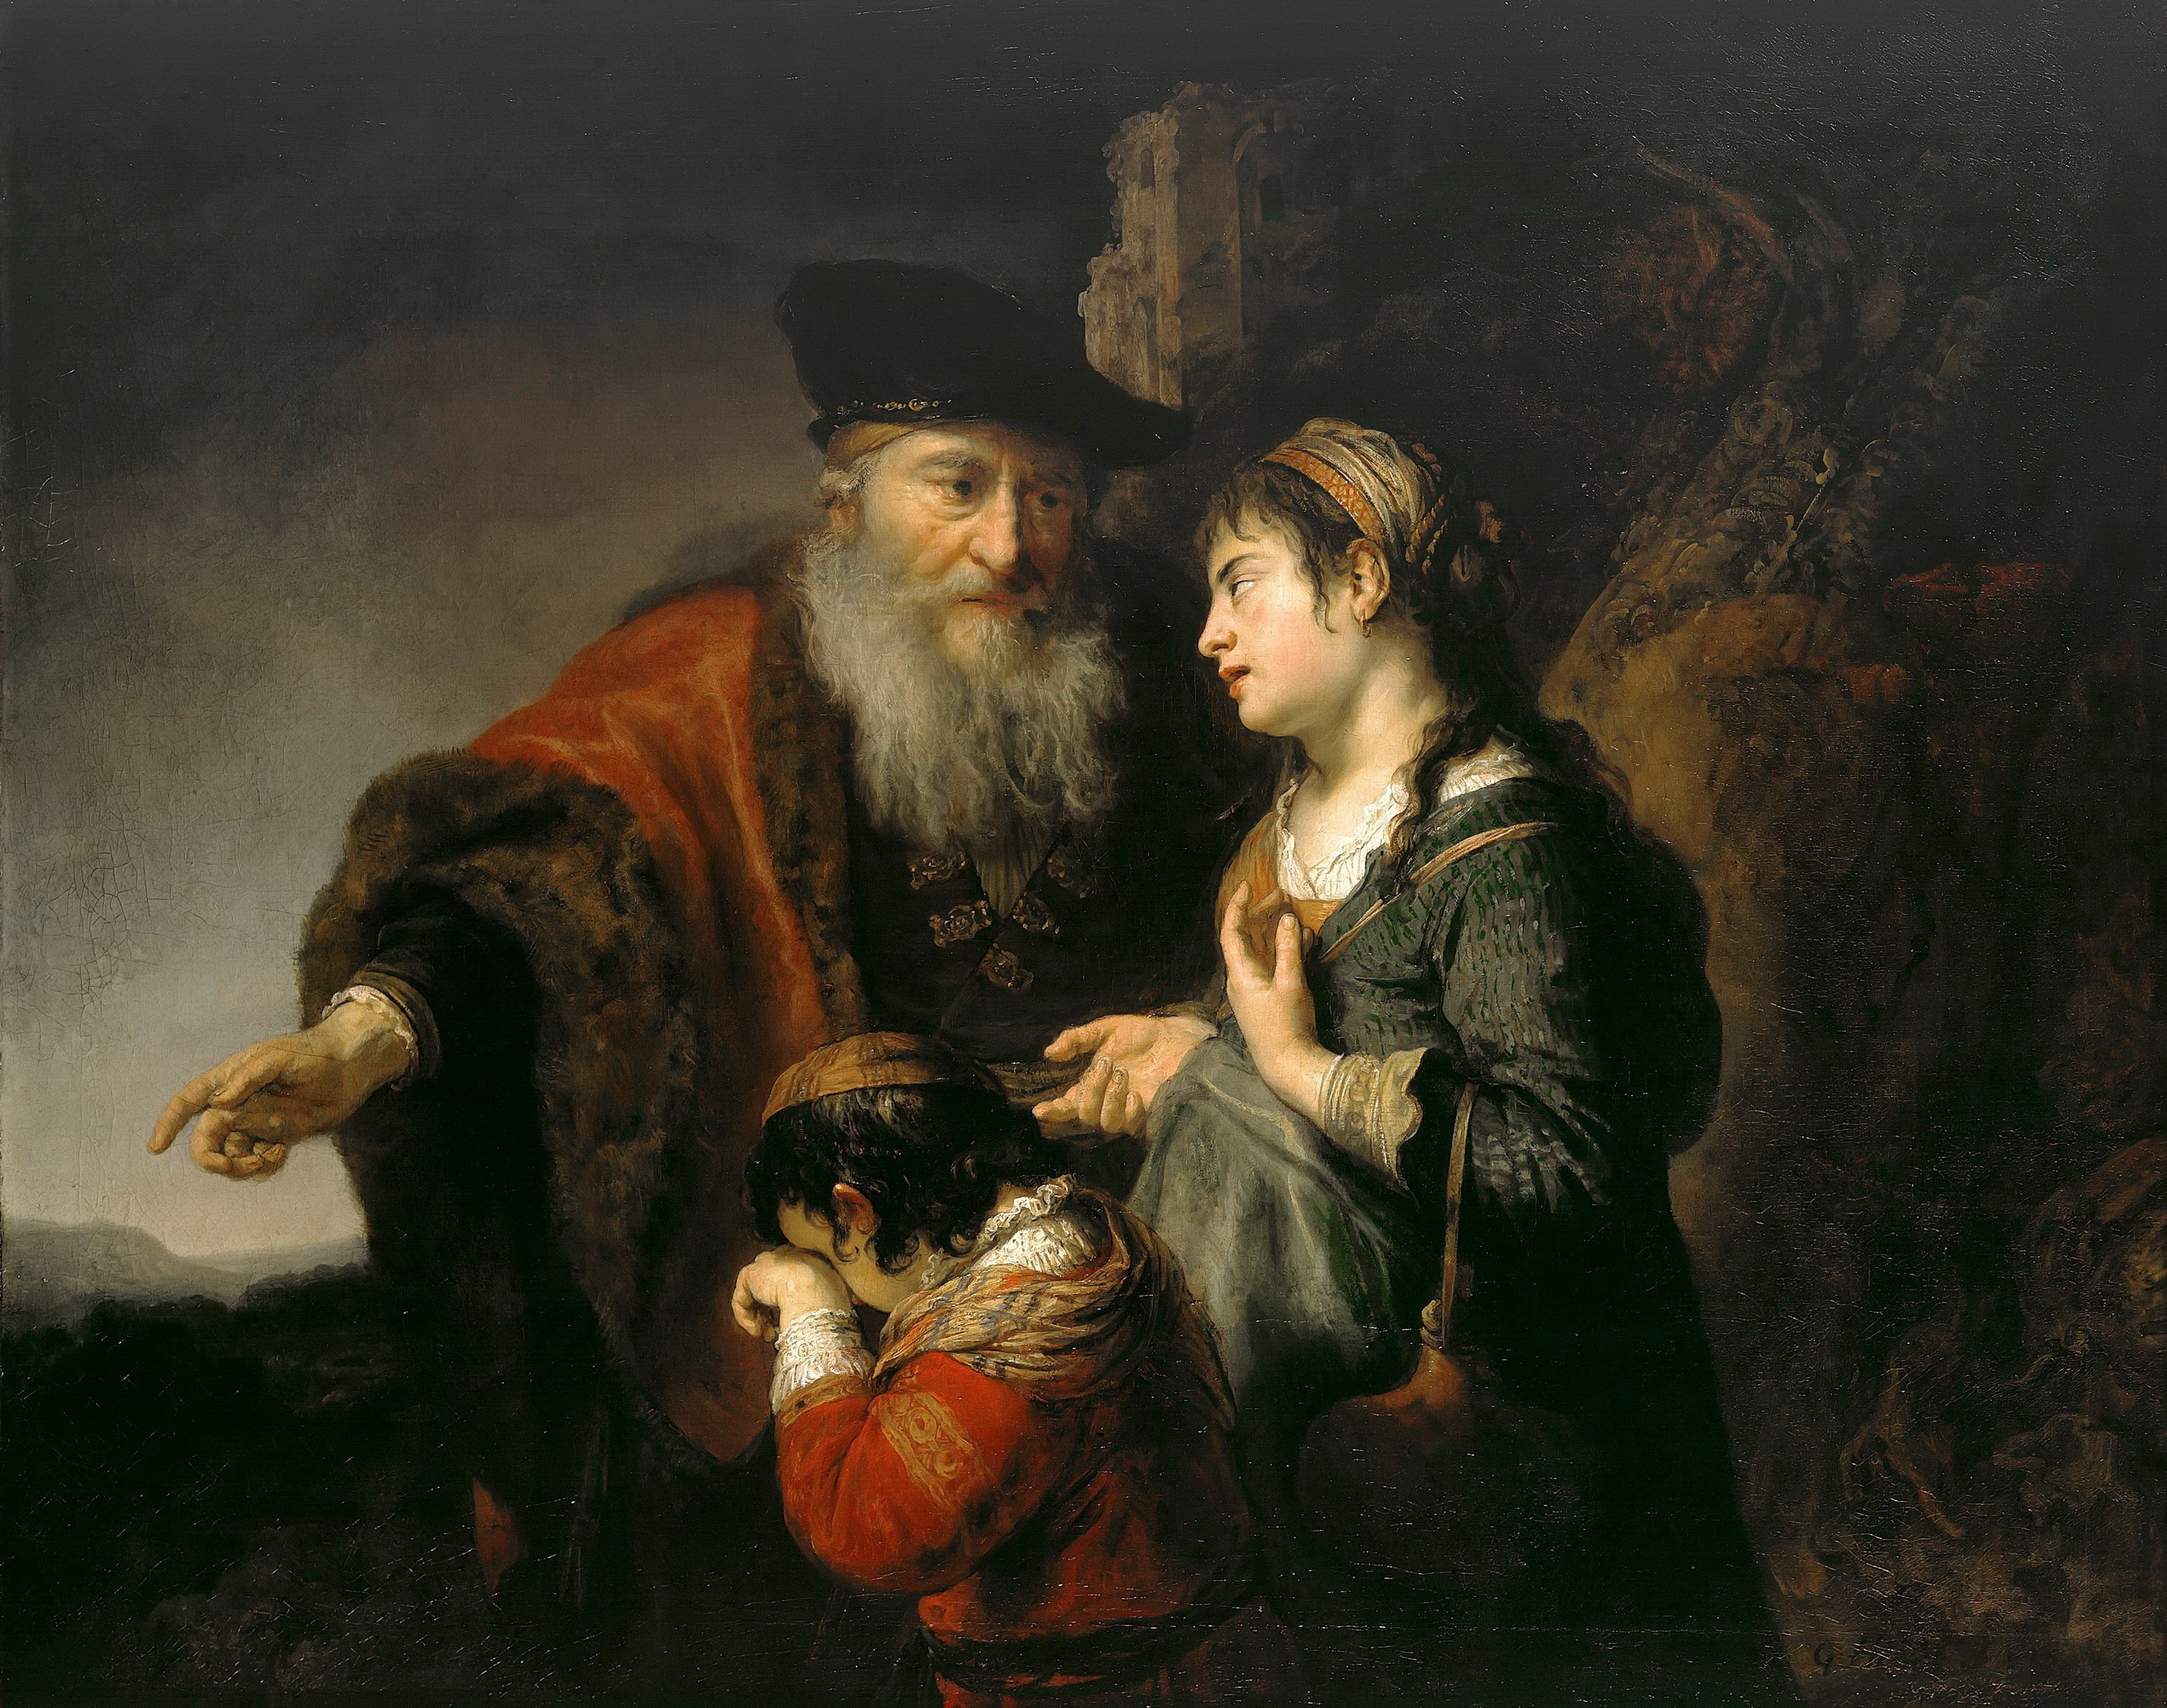 Govaert Flinck - The Expulsion of Hagar